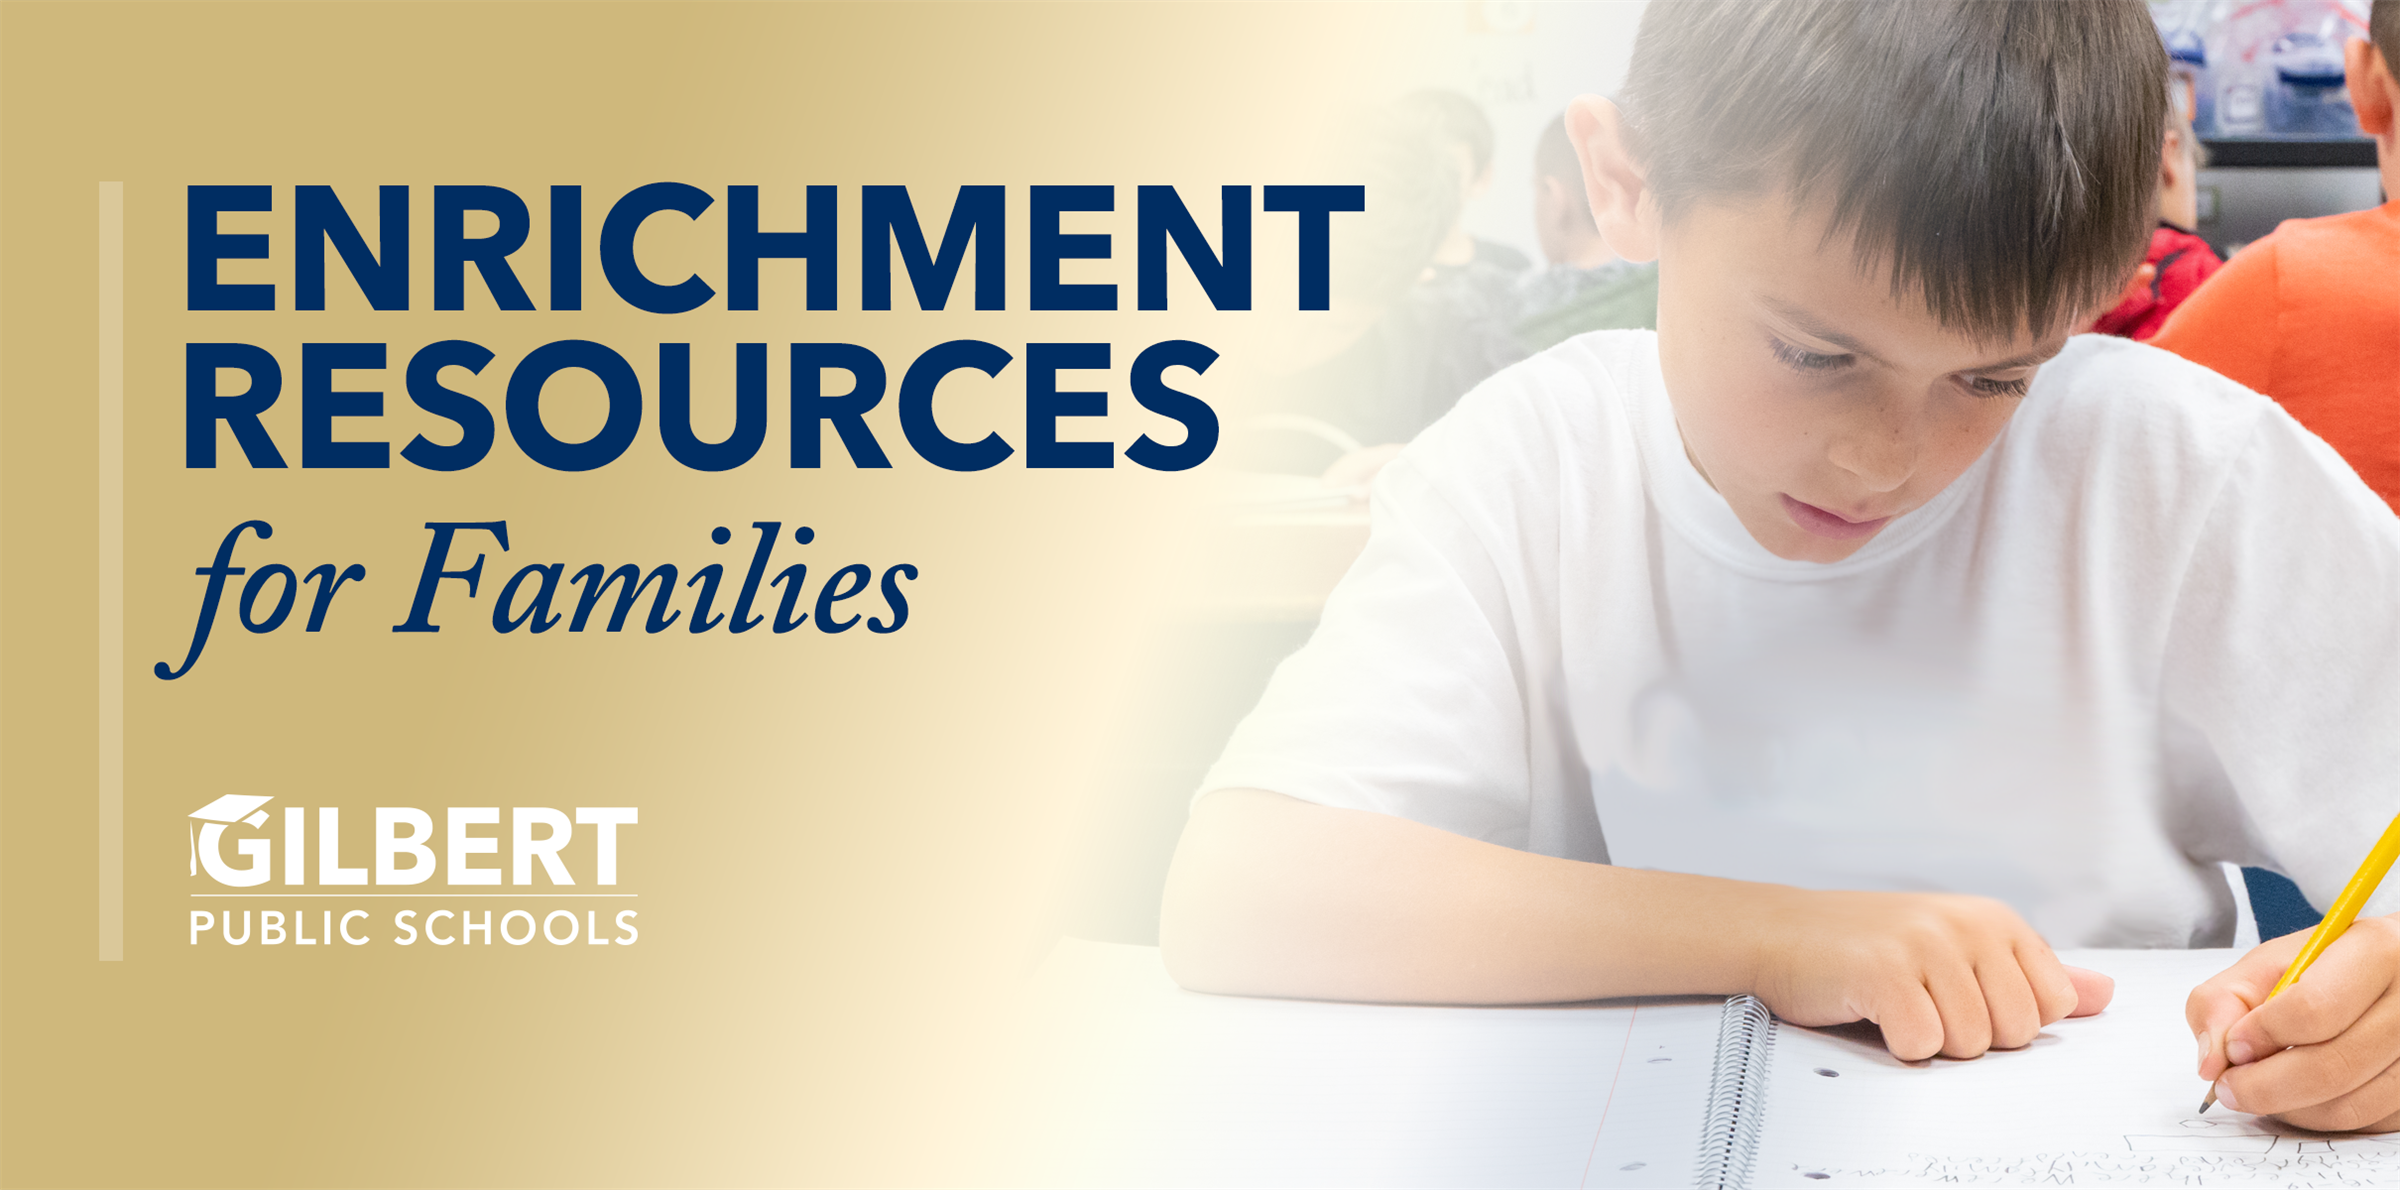 At Home Enrichment Resources for Families